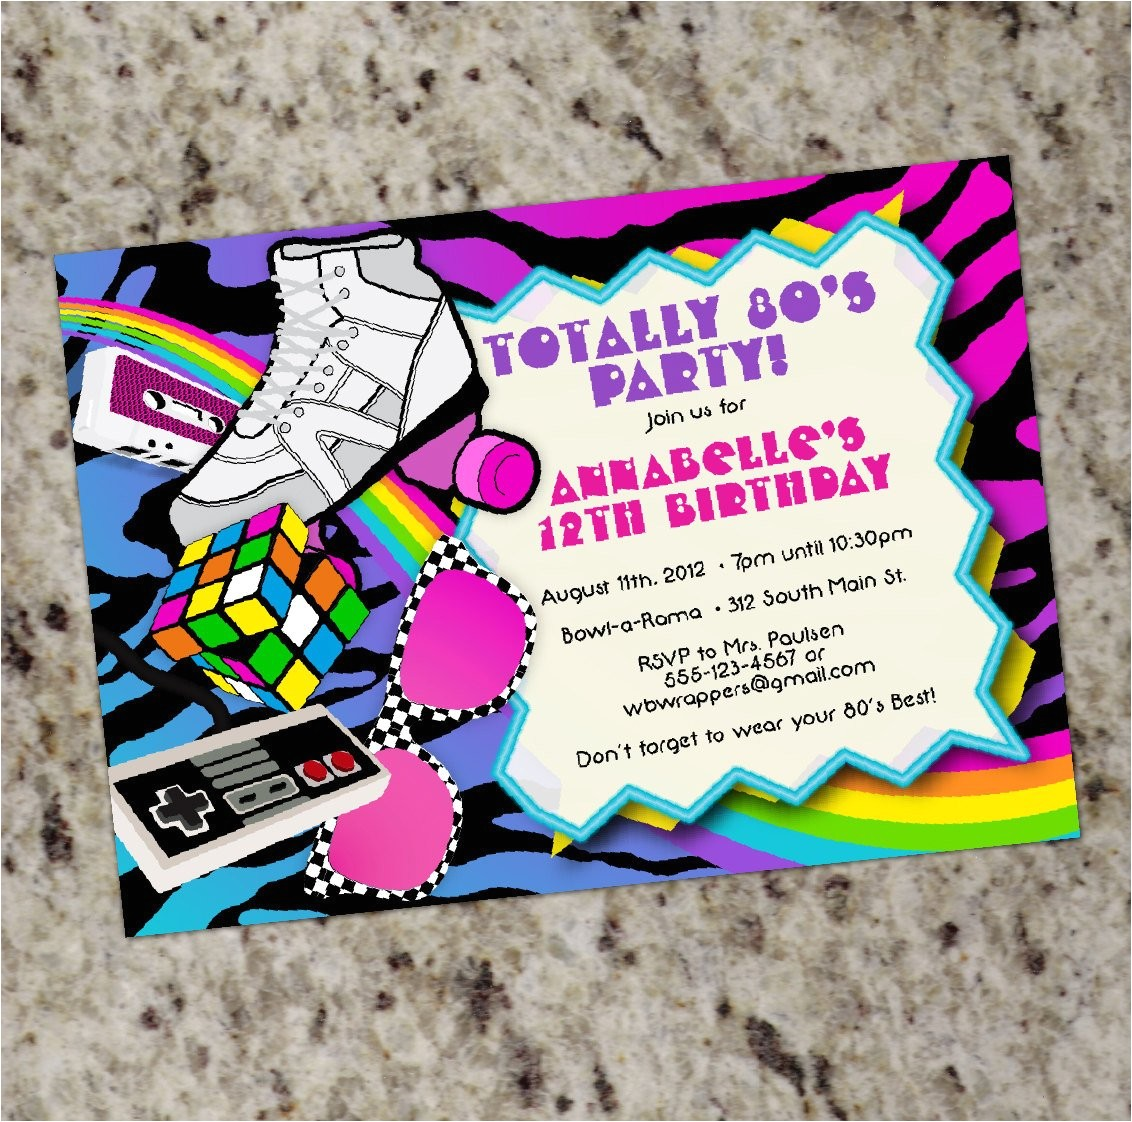 1980s Birthday Party Invitations totally 80s 1980s themed Birthday Party Invitations